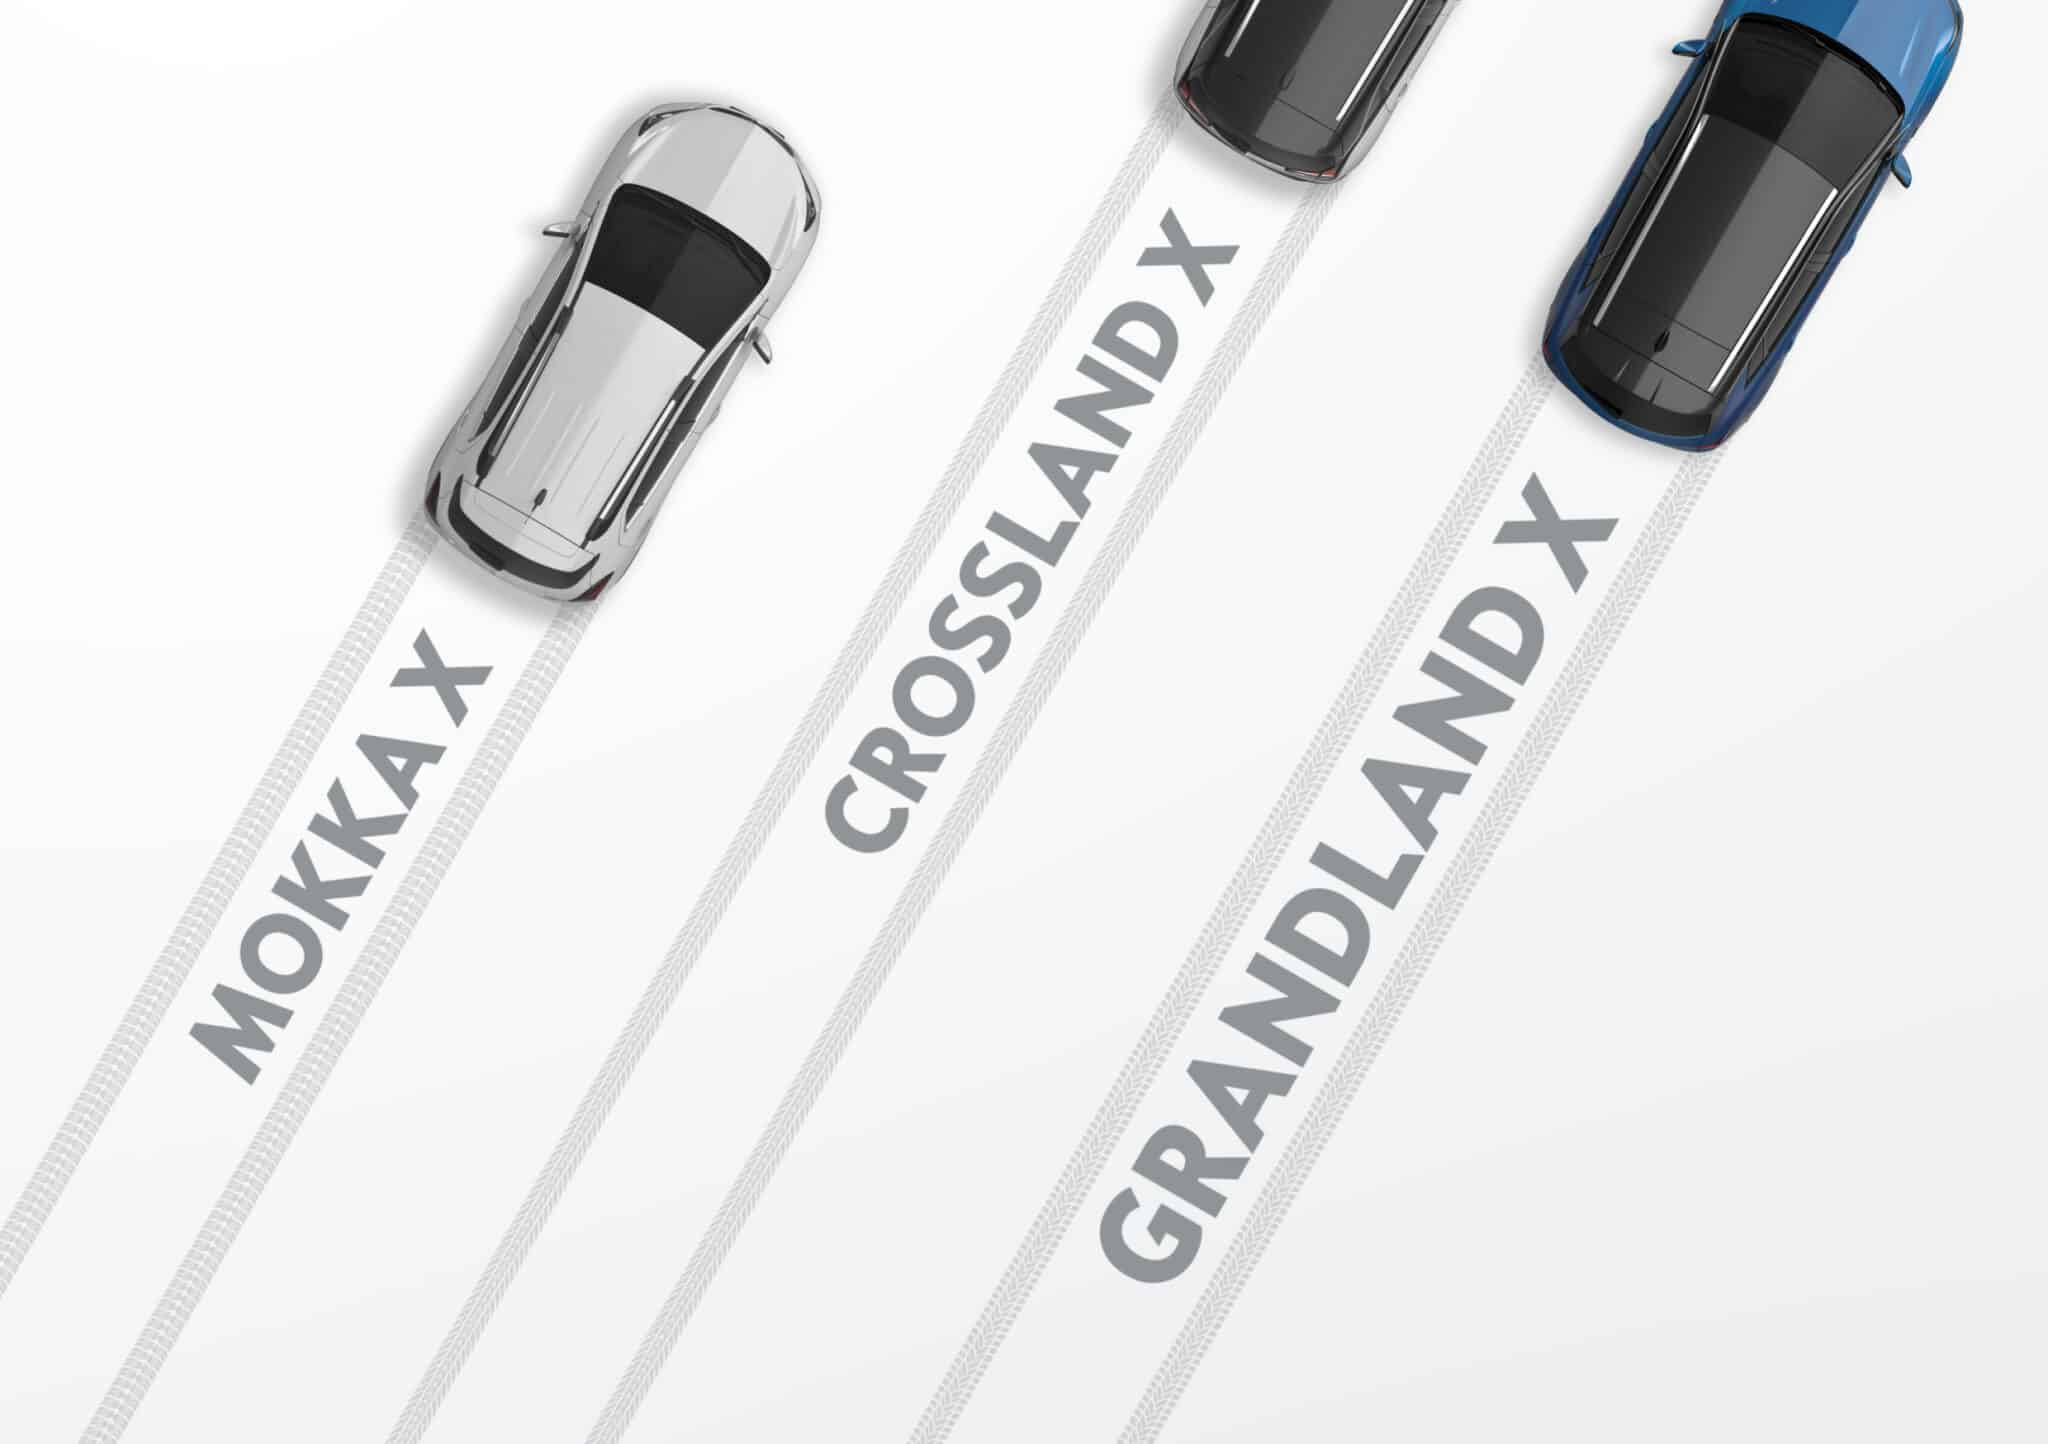 Rugged and elegant meets comfort and practicality: The Grandland X joins MOKKA X and Crossland X in the Opel X family.